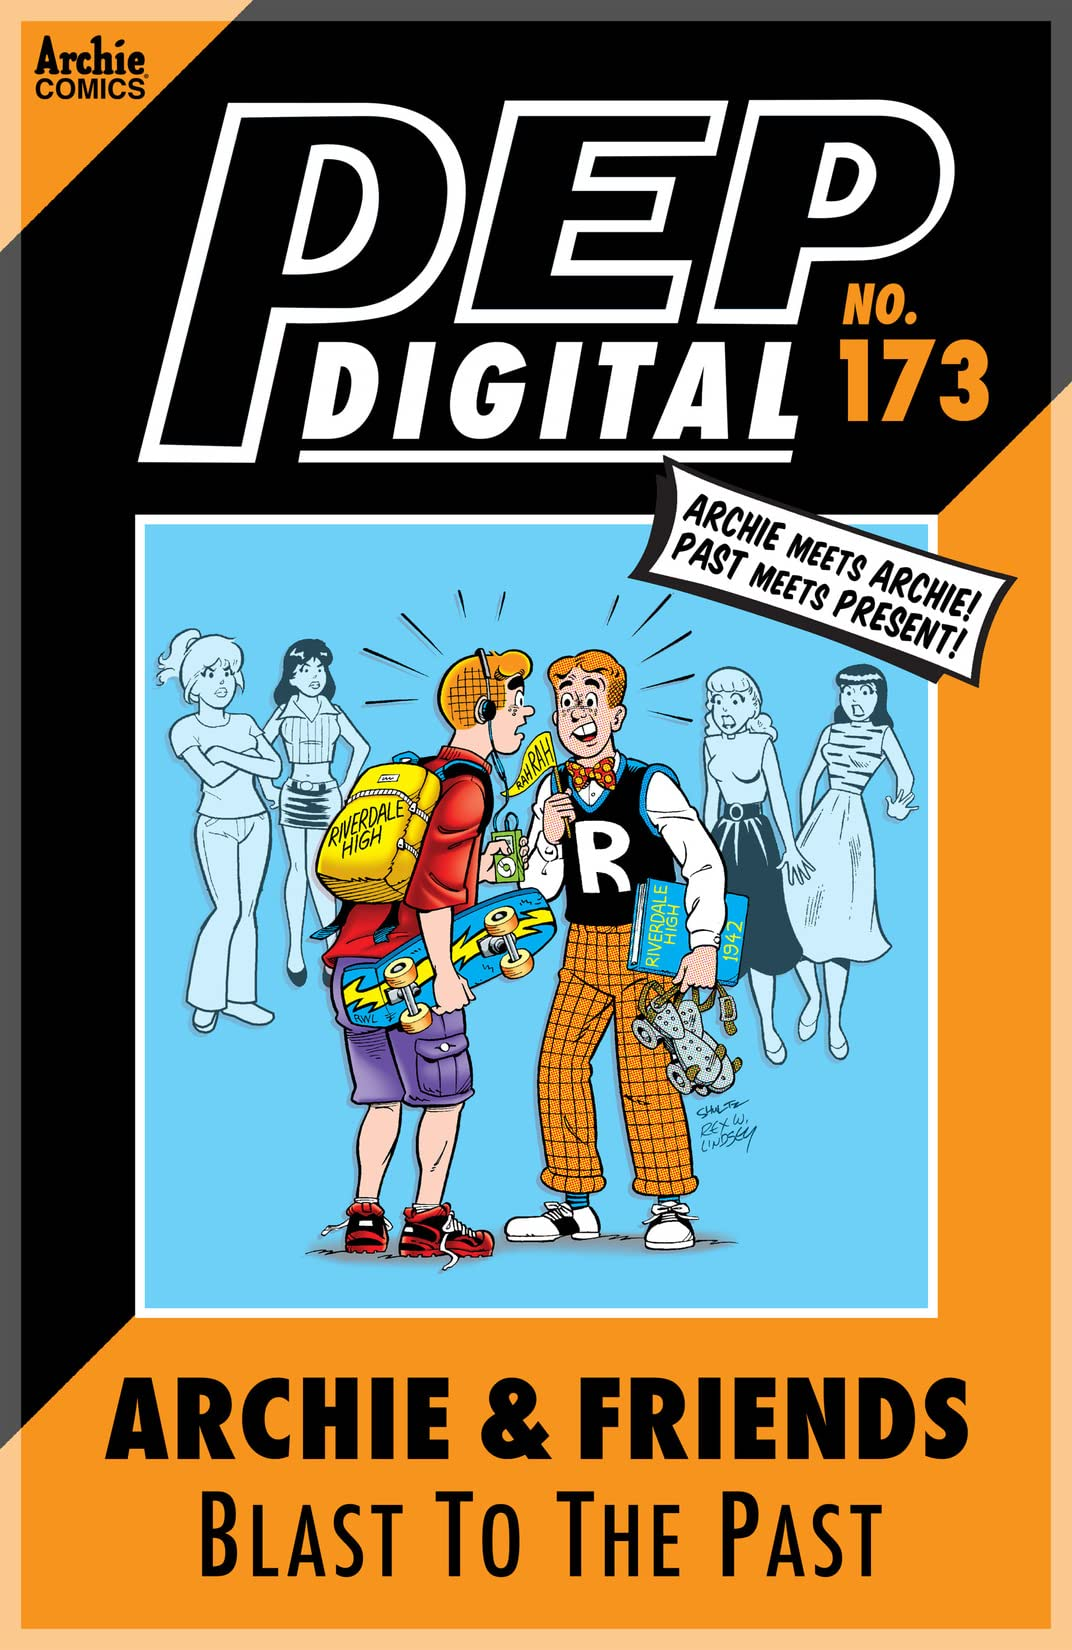 PEP Digital #173: Archie & Friends Blast to the Past